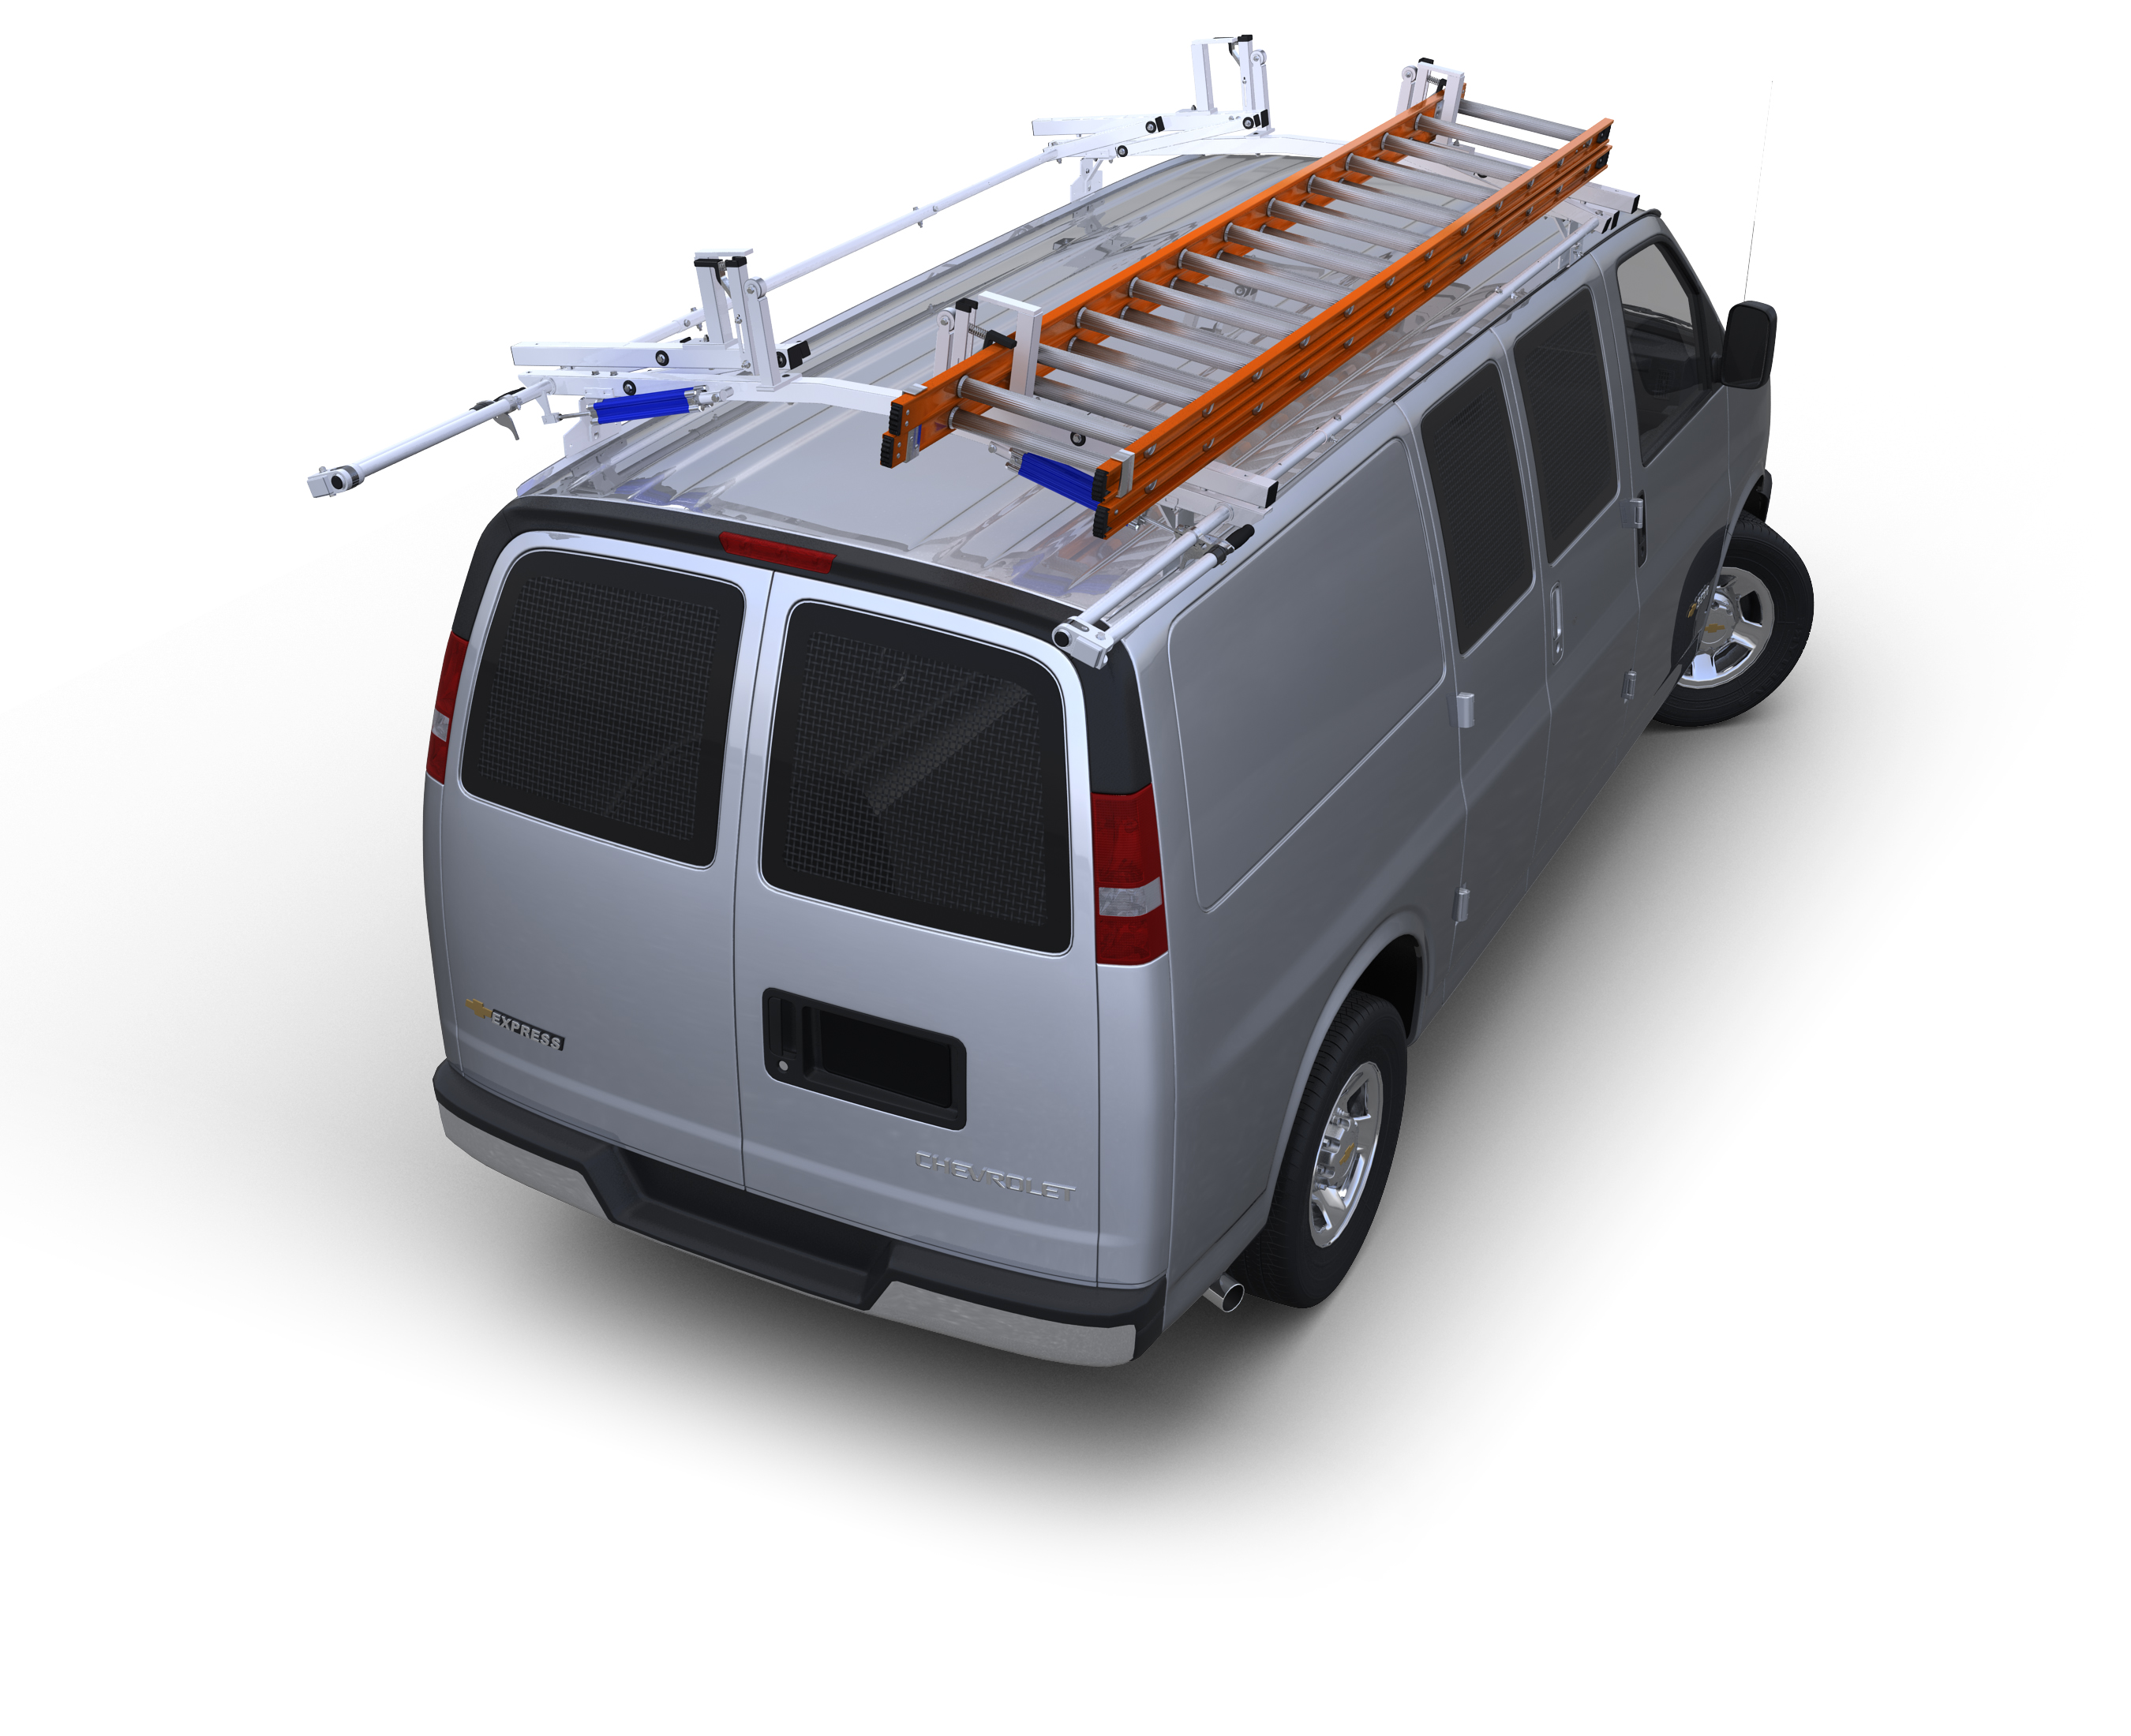 Plumbing Contractor Package – Standard Wheelbase - SAVE $150!